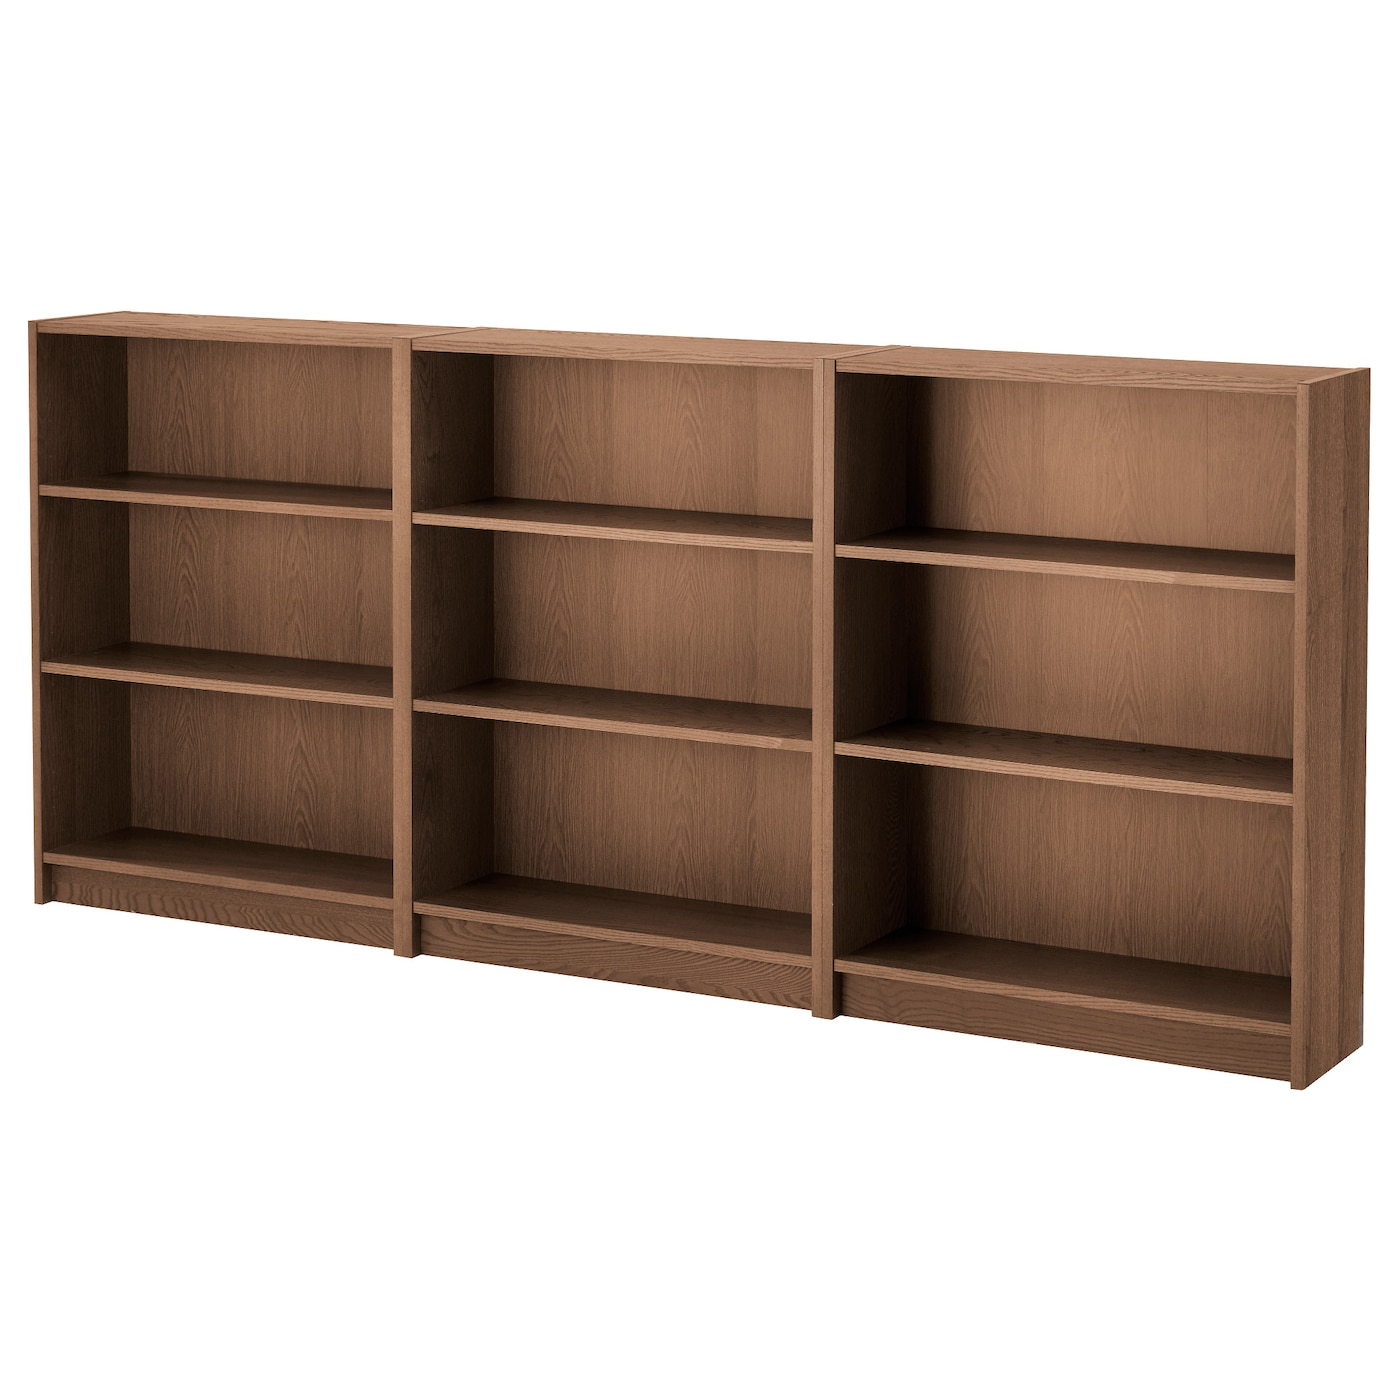 Billy bookcase brown ash veneer 240x106x28 cm ikea How deep should a bookshelf be